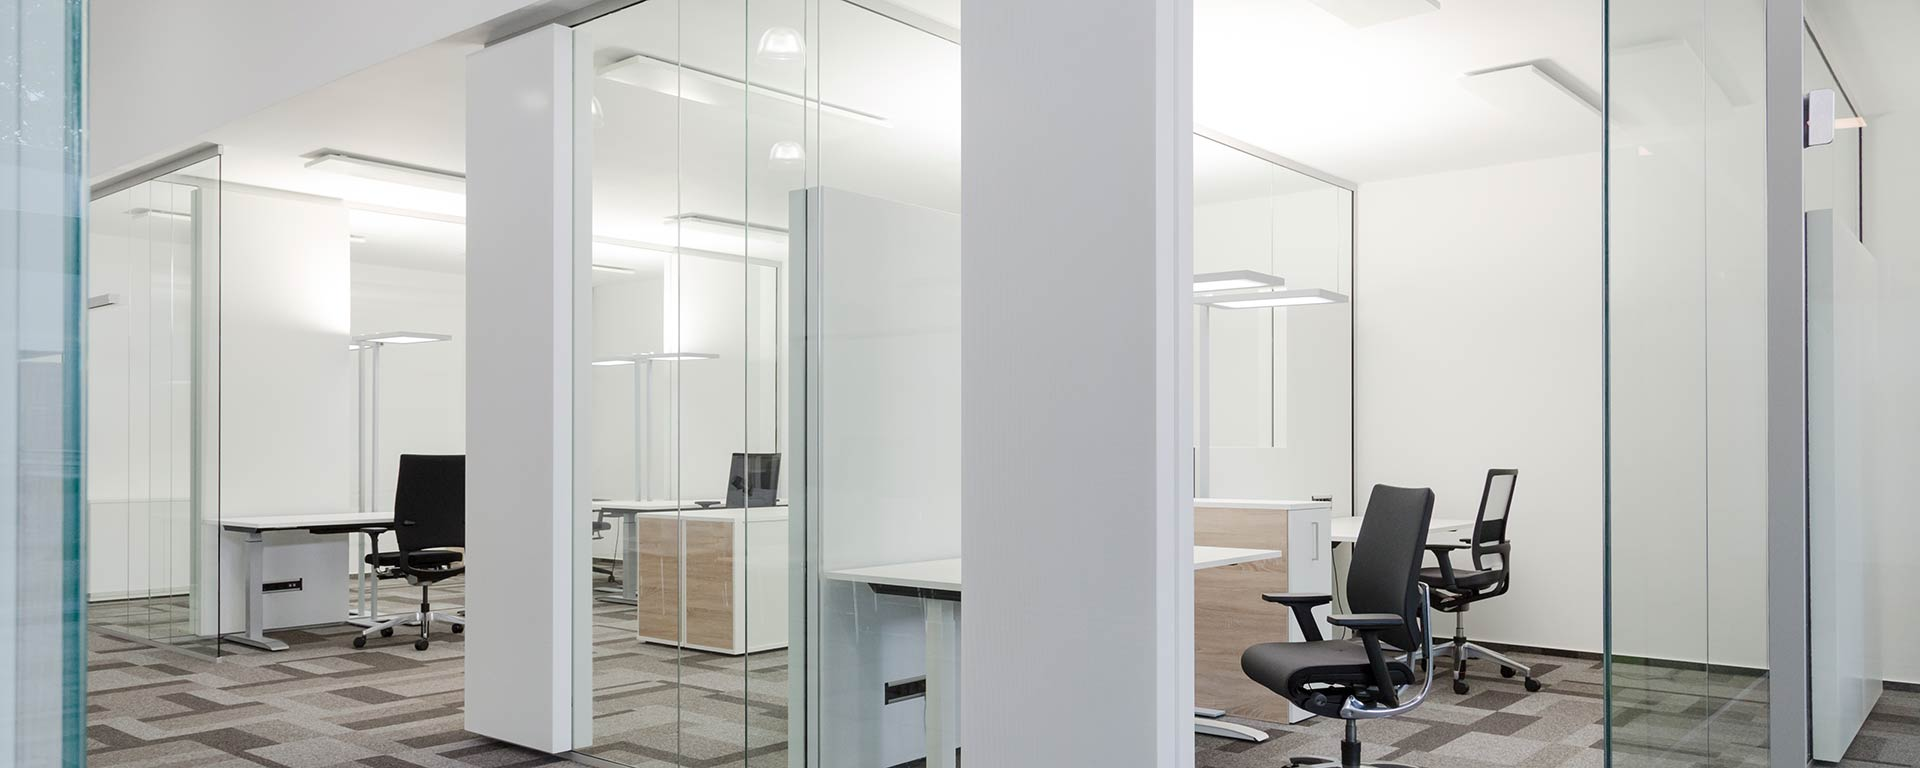 Glass acoustic system for peace and quiet in the office